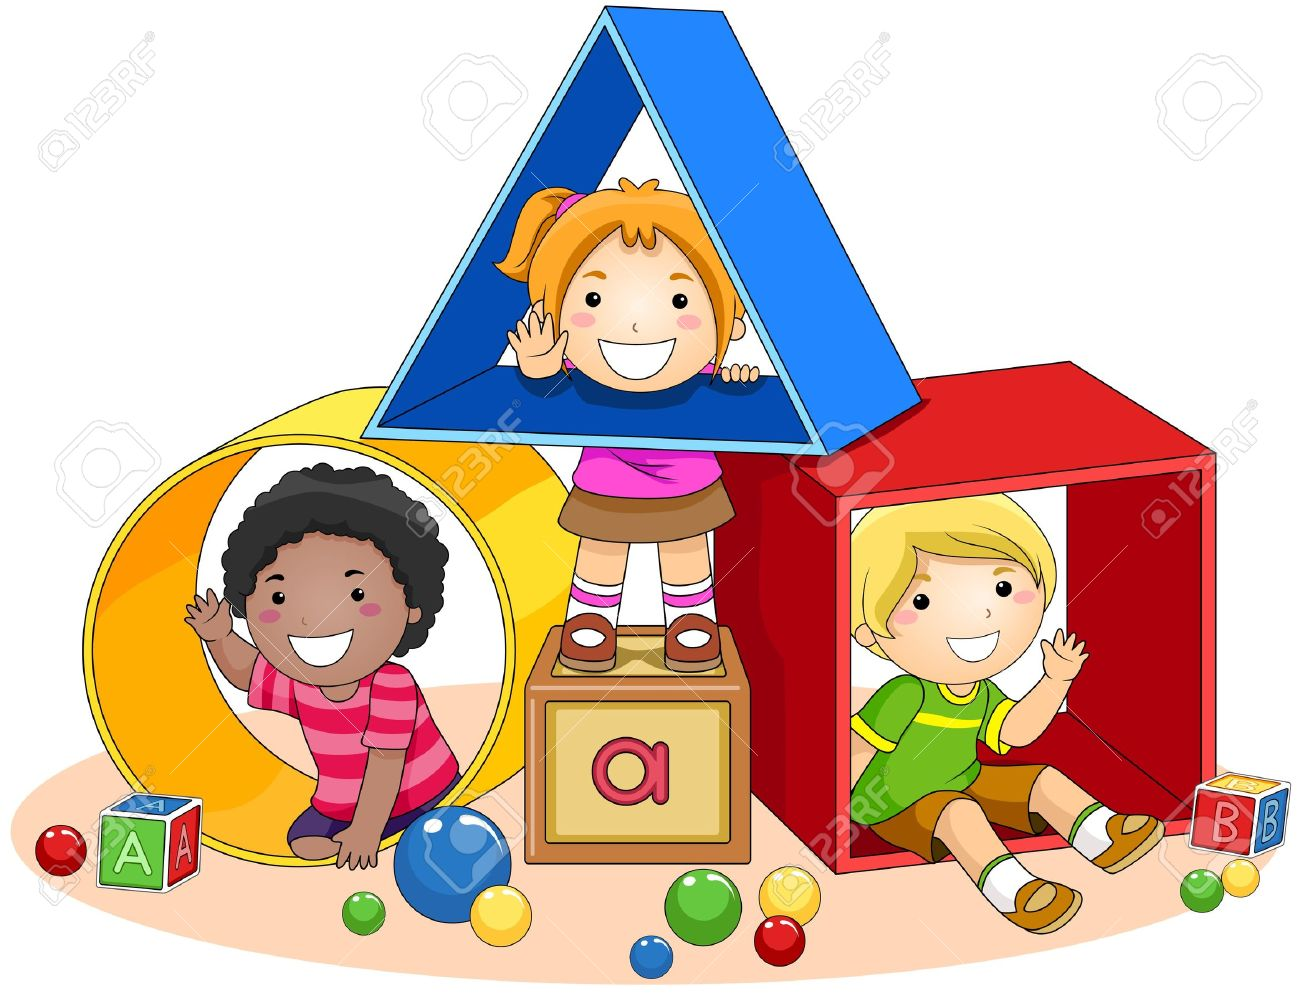 Children and toy stock. Child building with blocks clipart